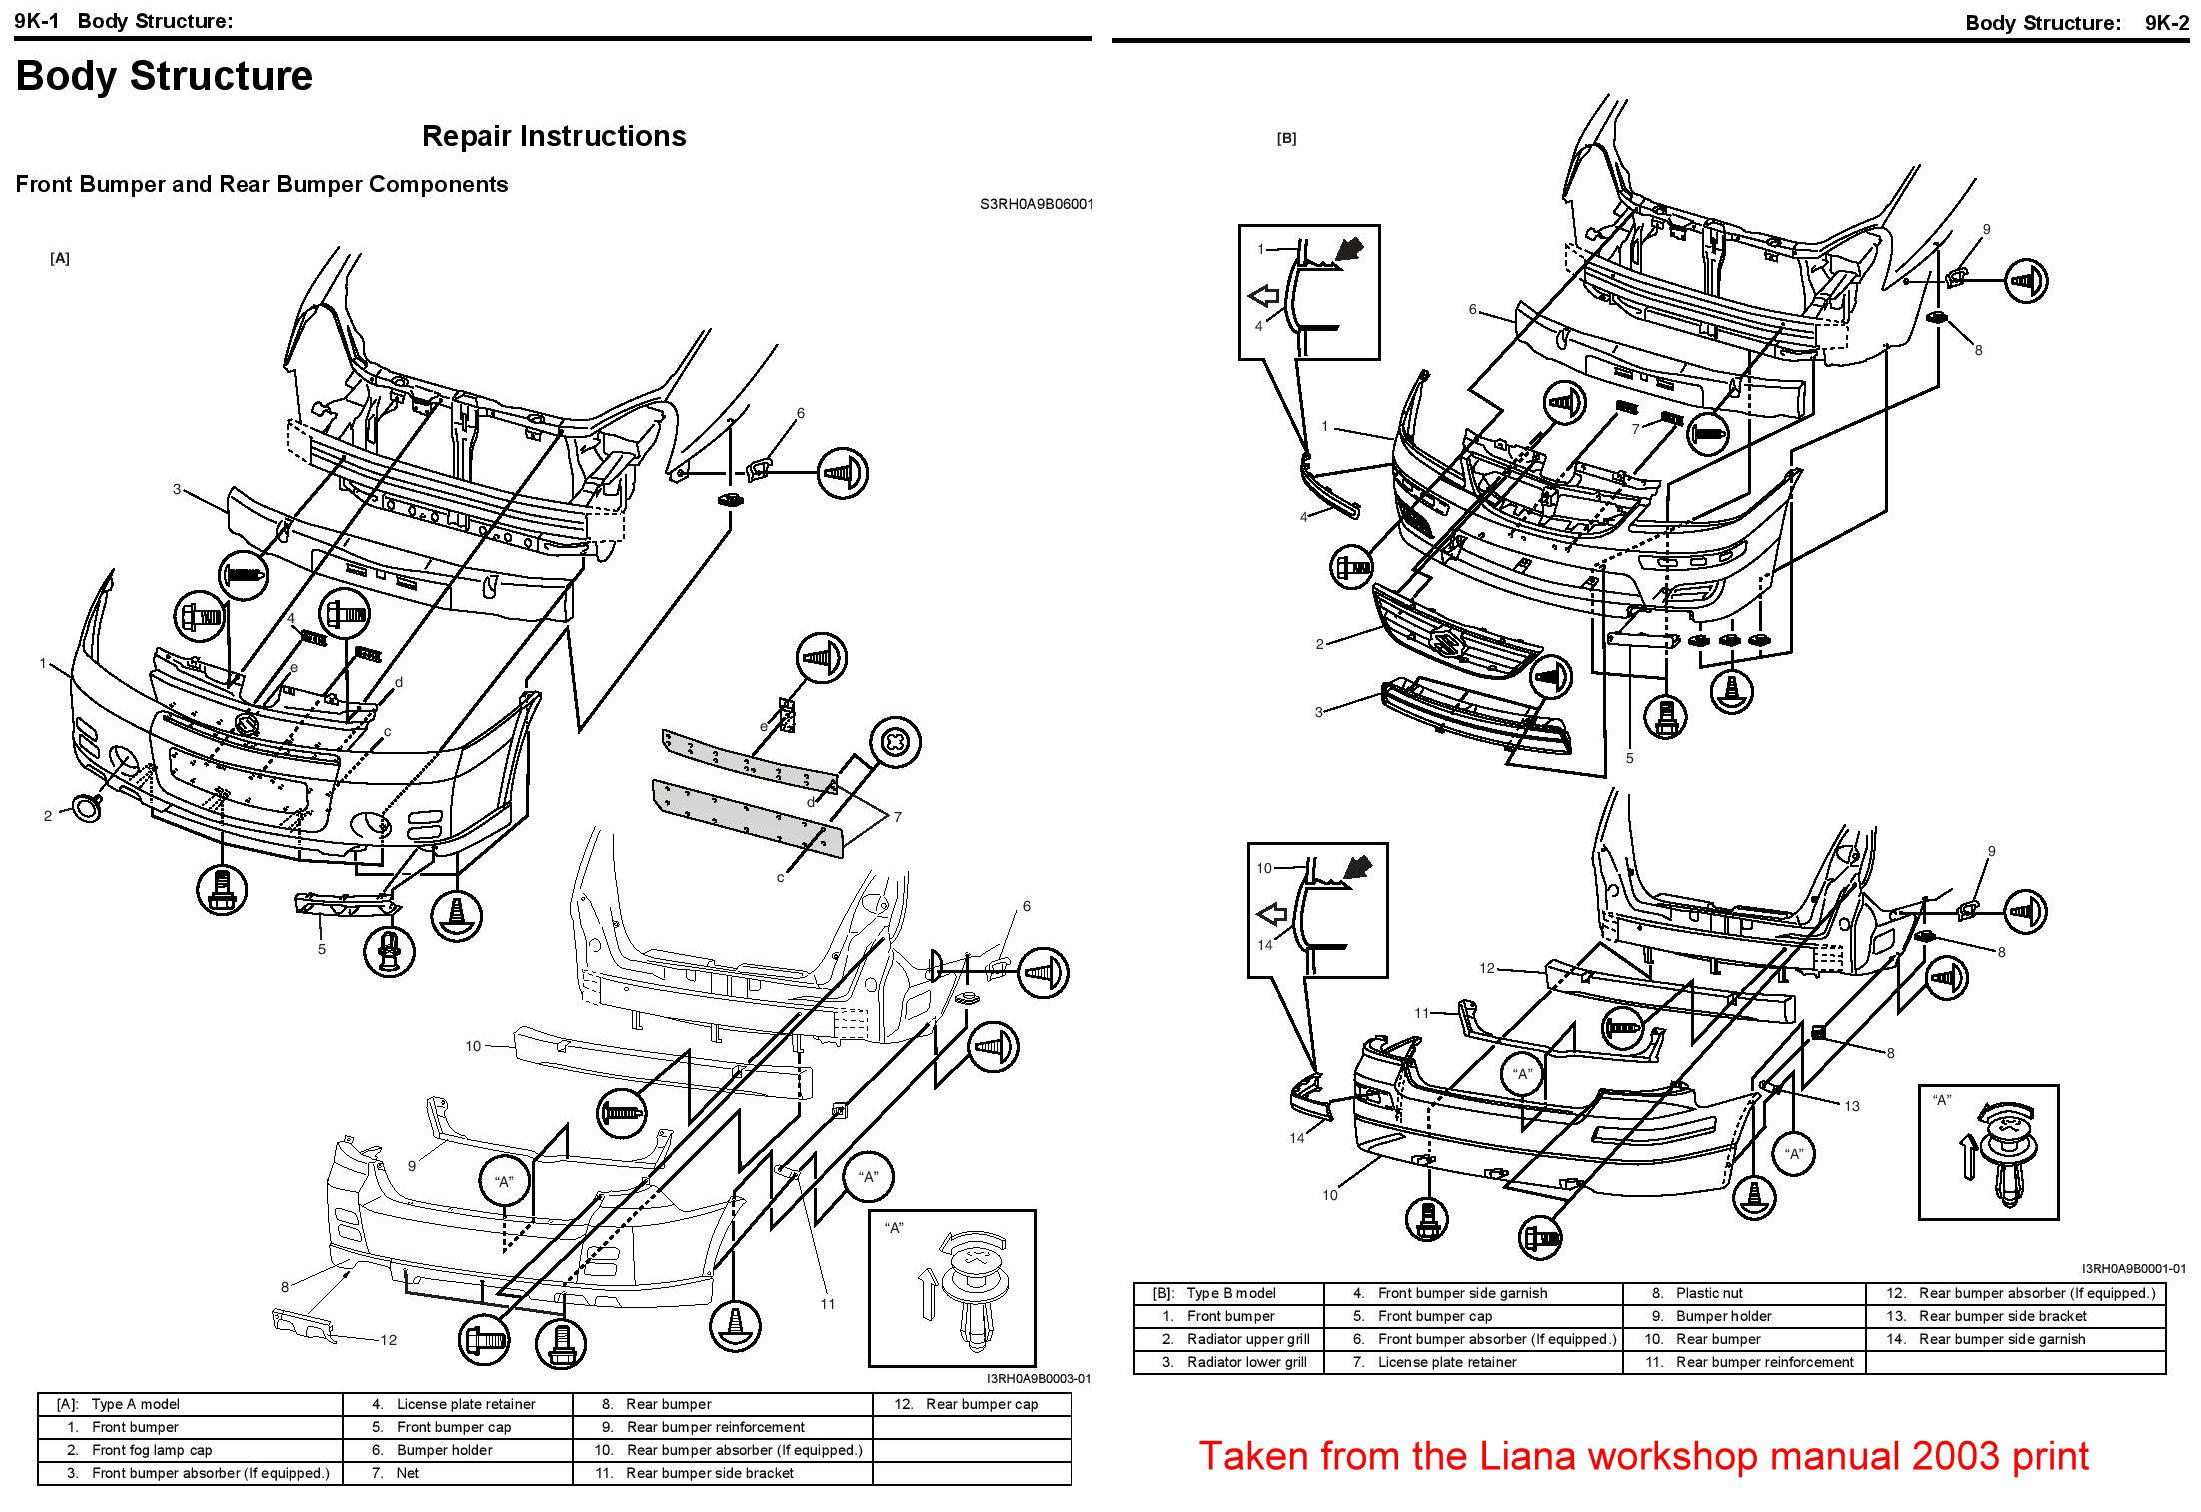 Service Manual How To Remove Rear Bumper Suzuki